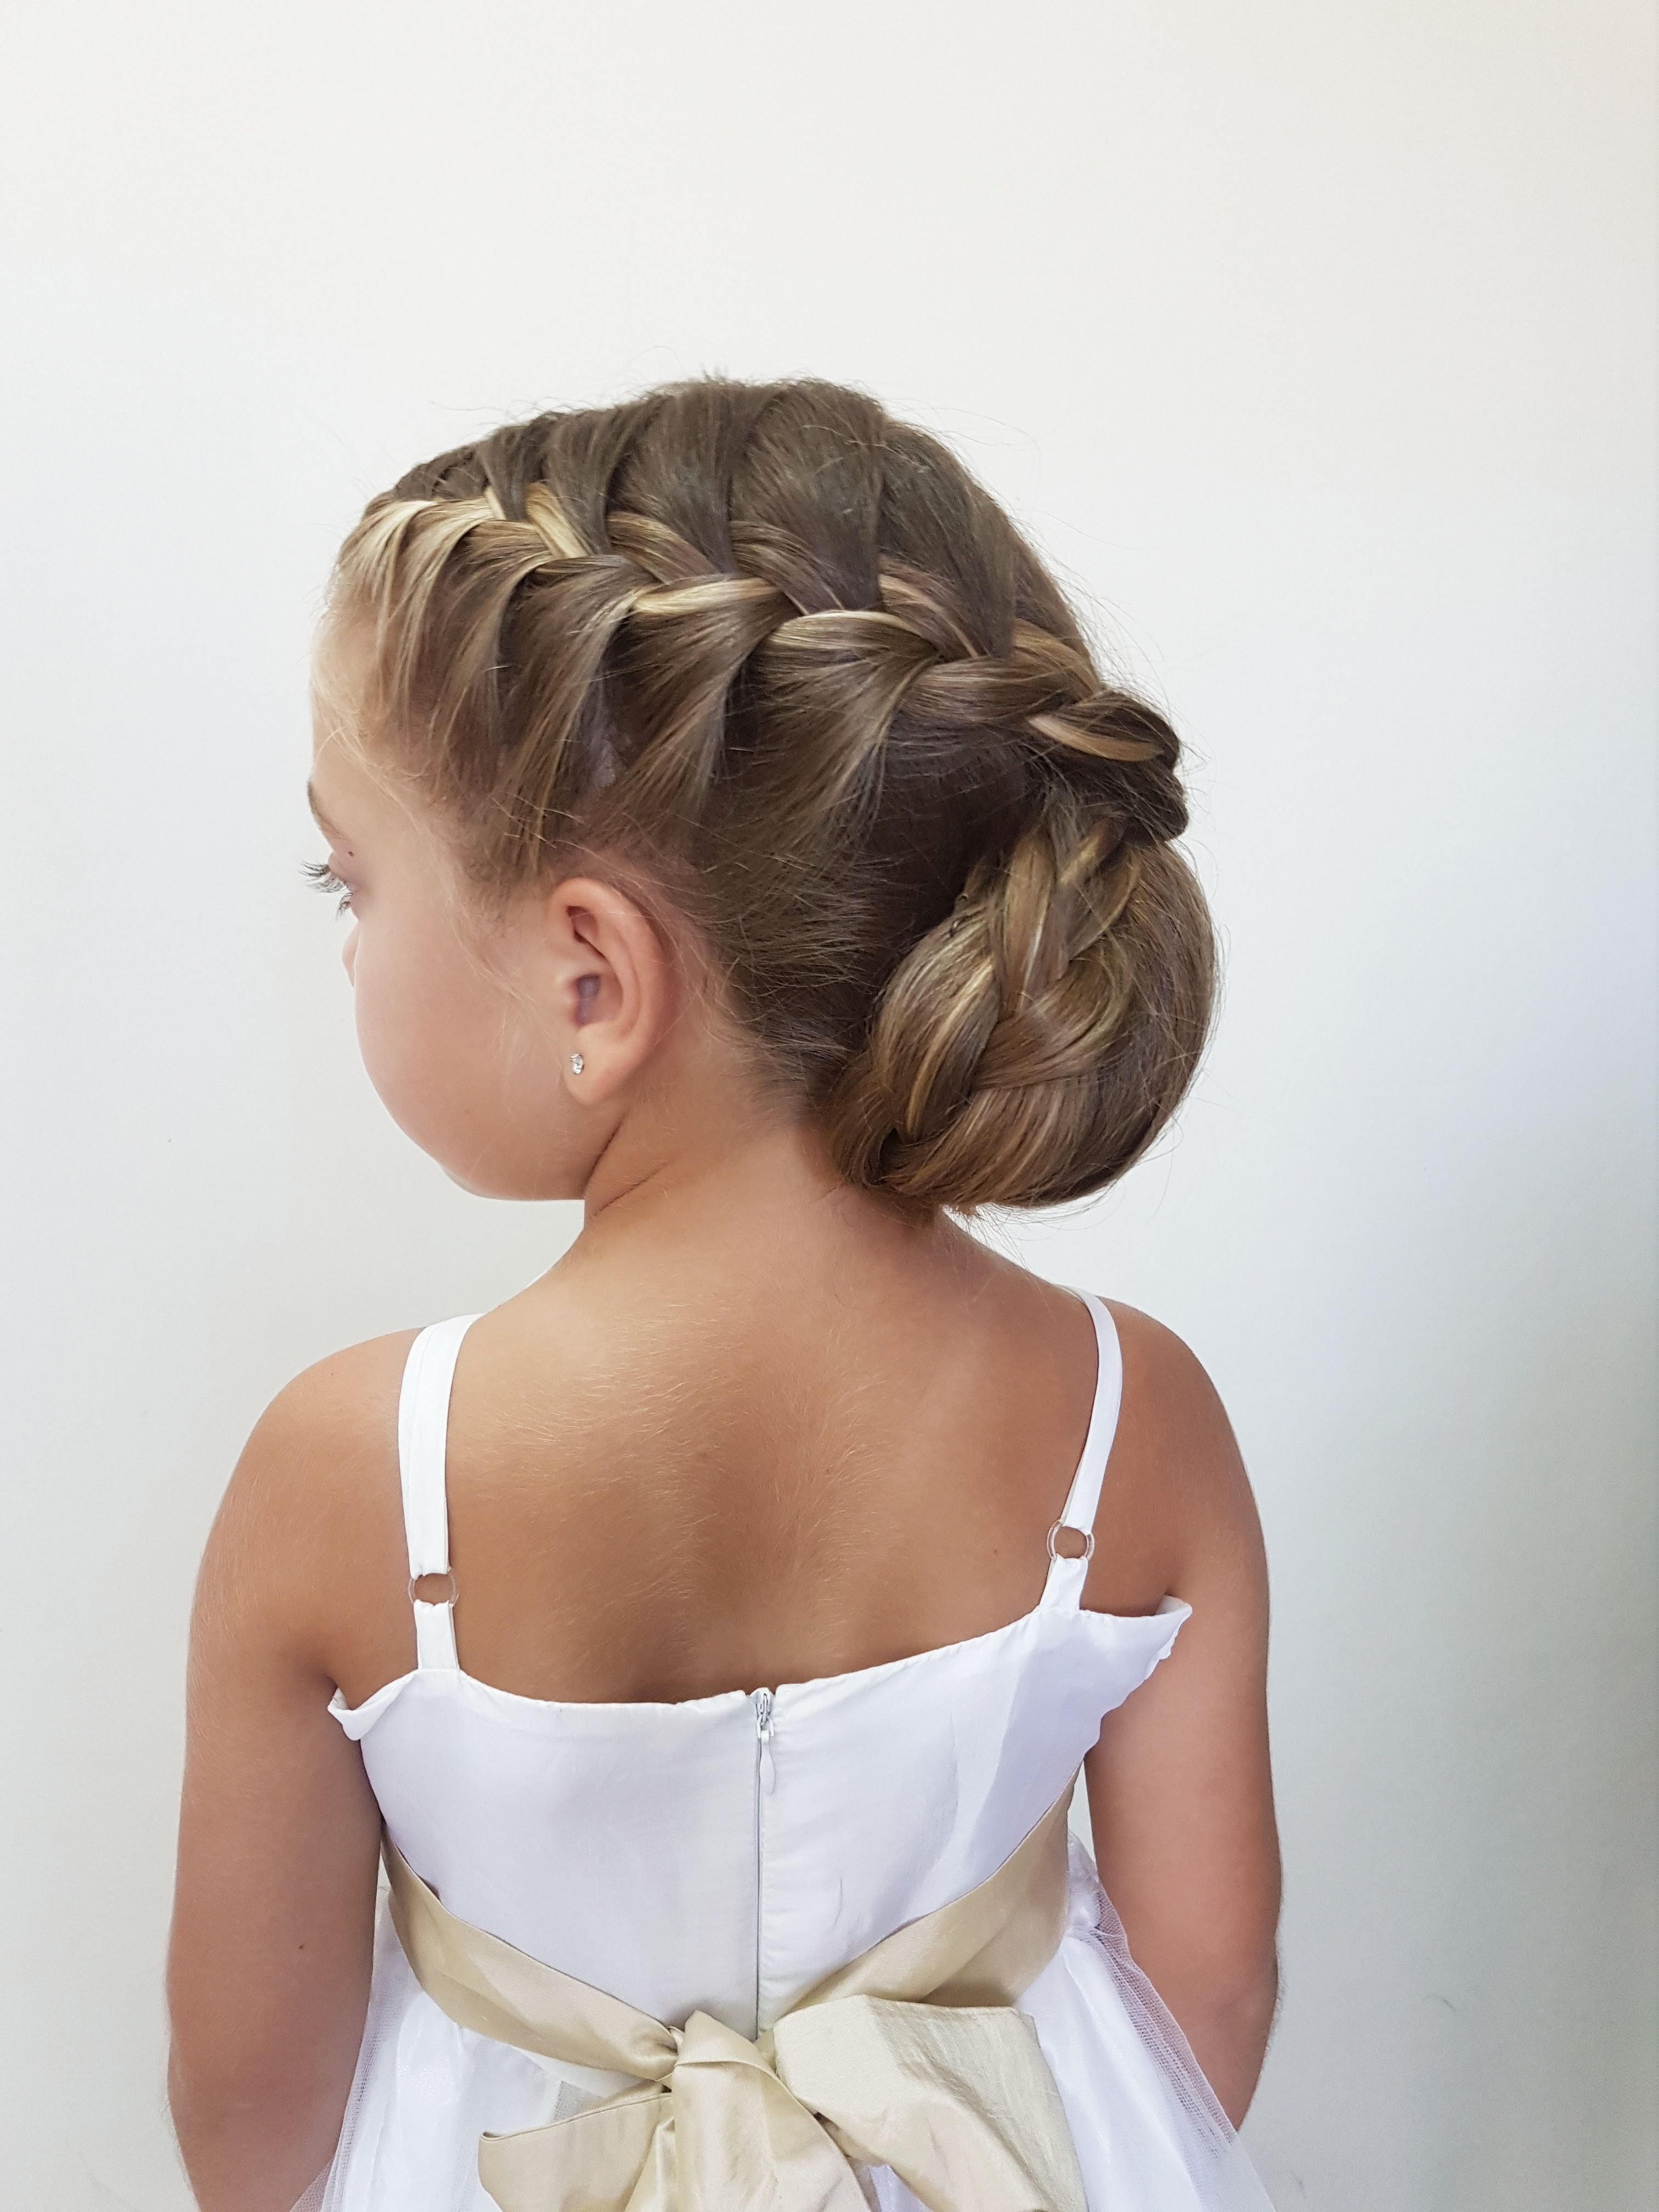 Pin By Emily Rector On Aubreys Hairstyles In 2019 Kids Hairstyles In 2020 Junior Bridesmaid Hair Kids Hairstyles For Wedding Kids Hairstyles